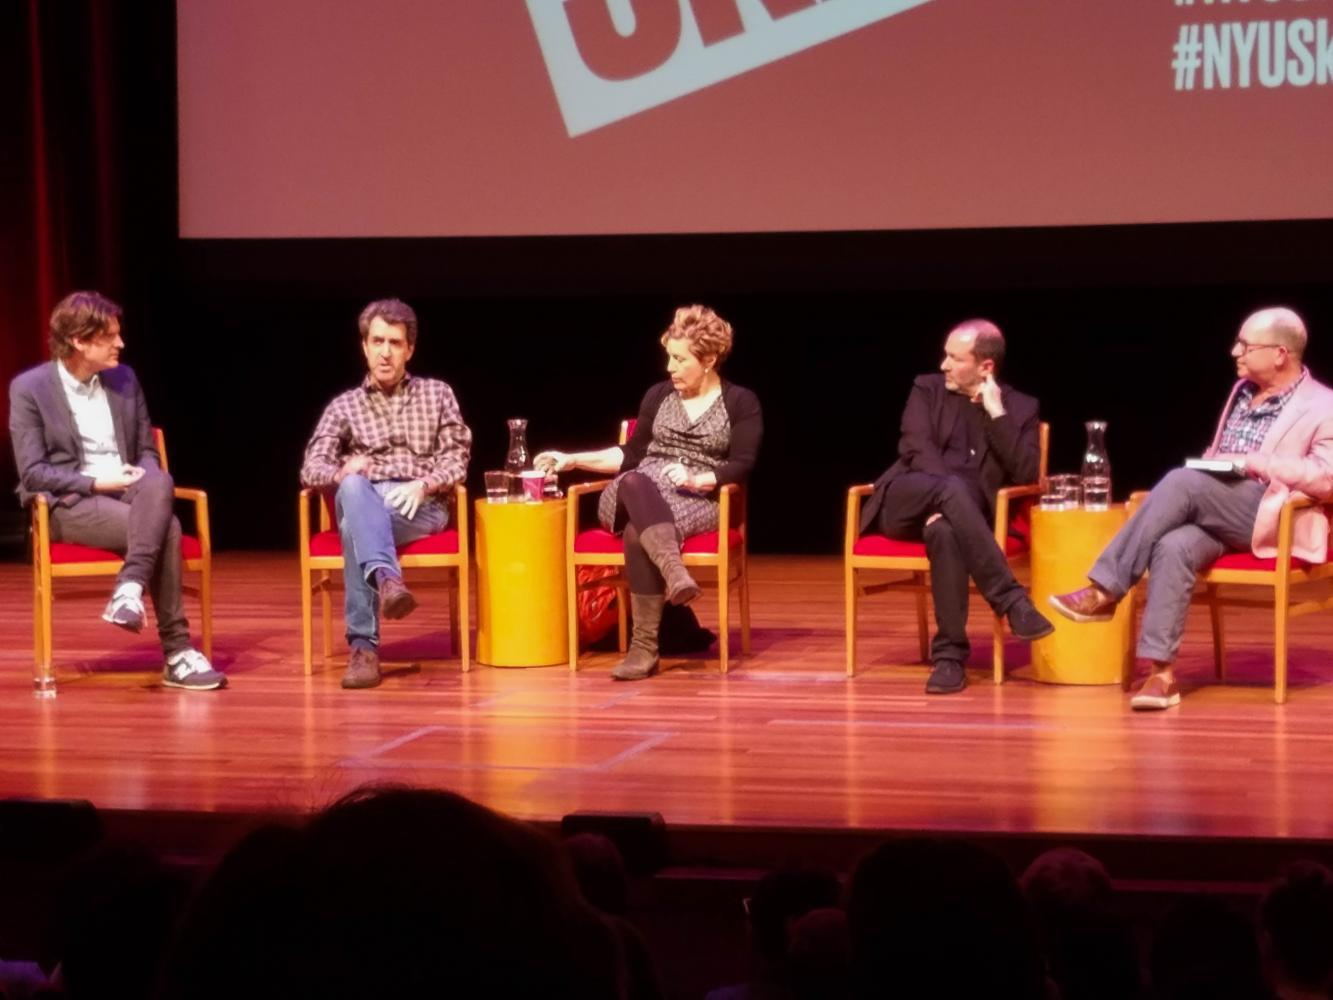 """On Oct. 2 at Skirball, Laurence Maslon hosted a talk with three Tony-Winning writers Jason Robert Brown, Lisa Kron and Steven Lutvak. The panel, """"Visionaries from the worlds of politics, the arts, sciences, academia and more"""" is hosted every Monday at 6:30pm."""